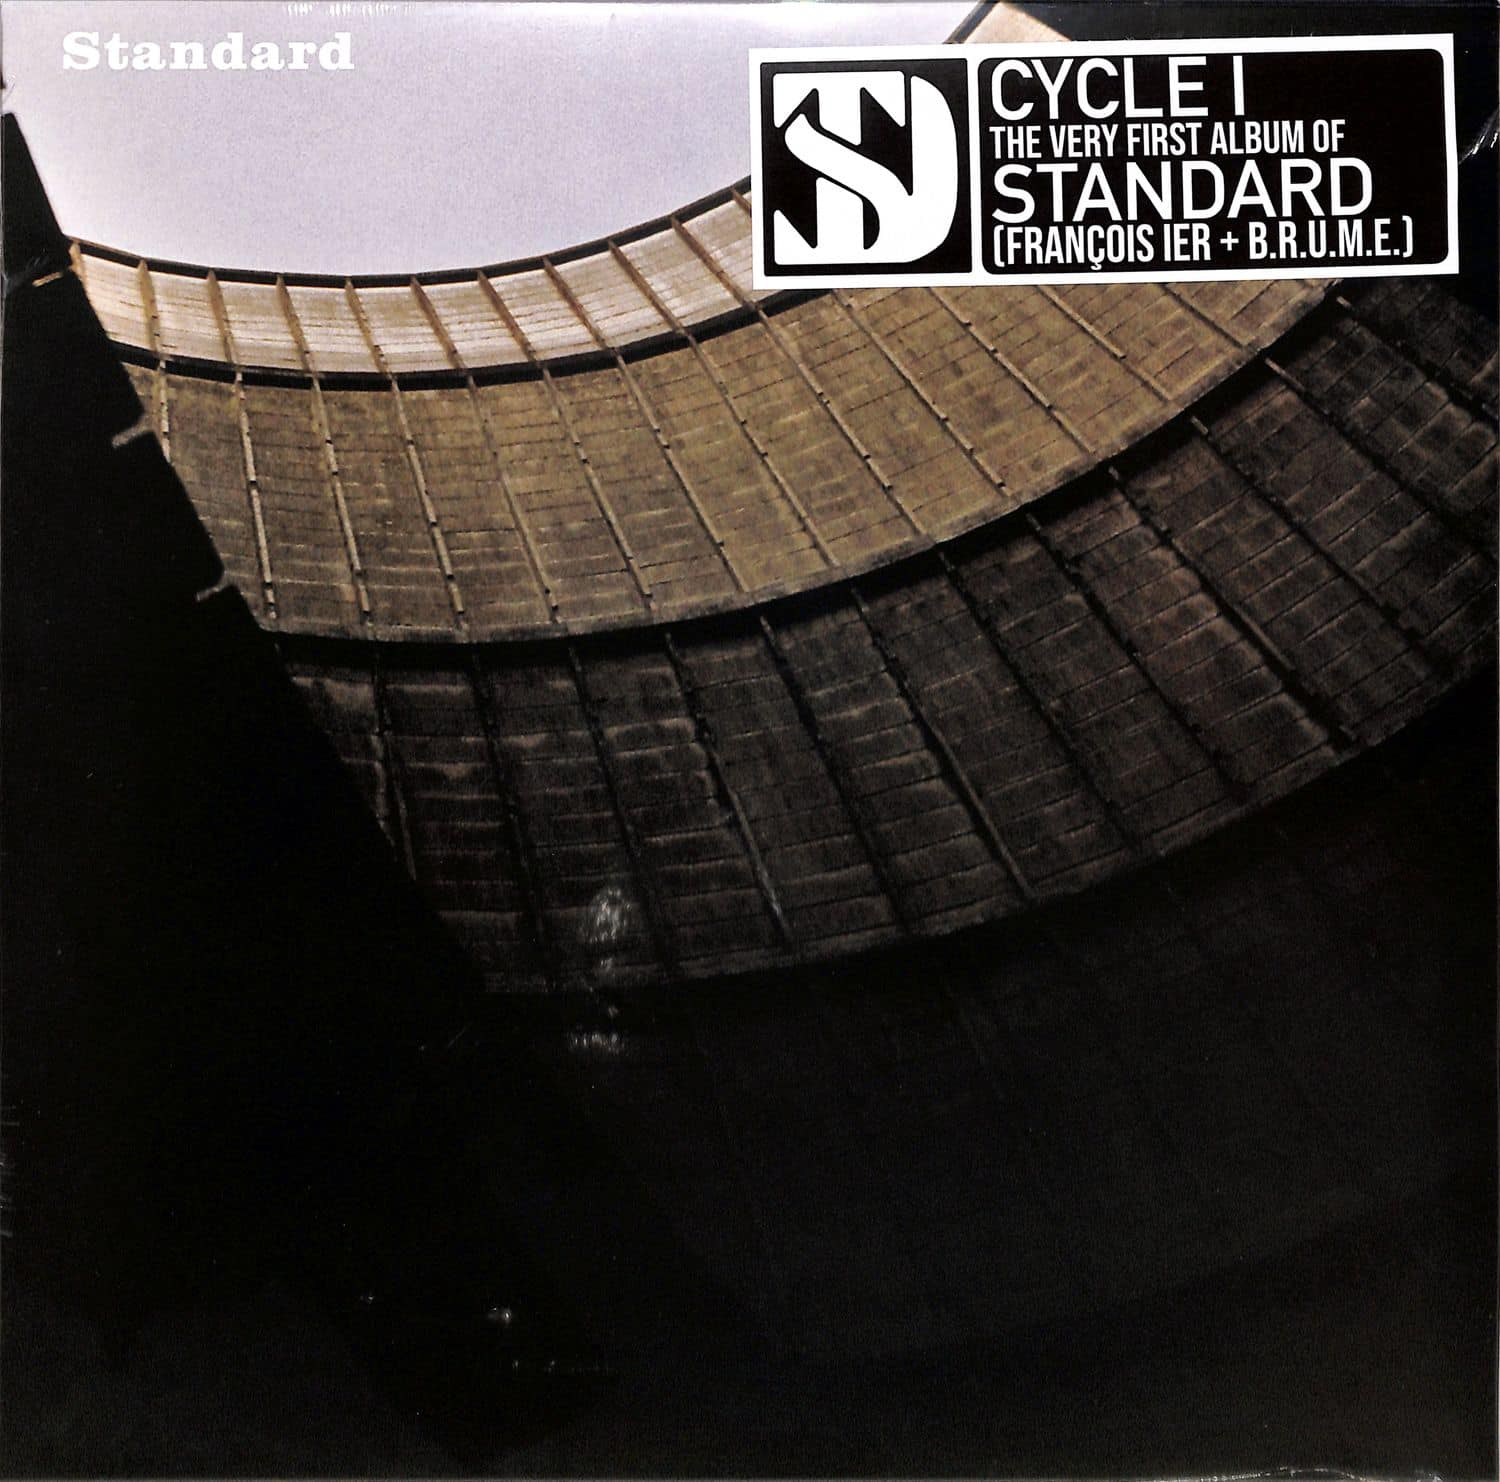 Standard - CYCLE 1